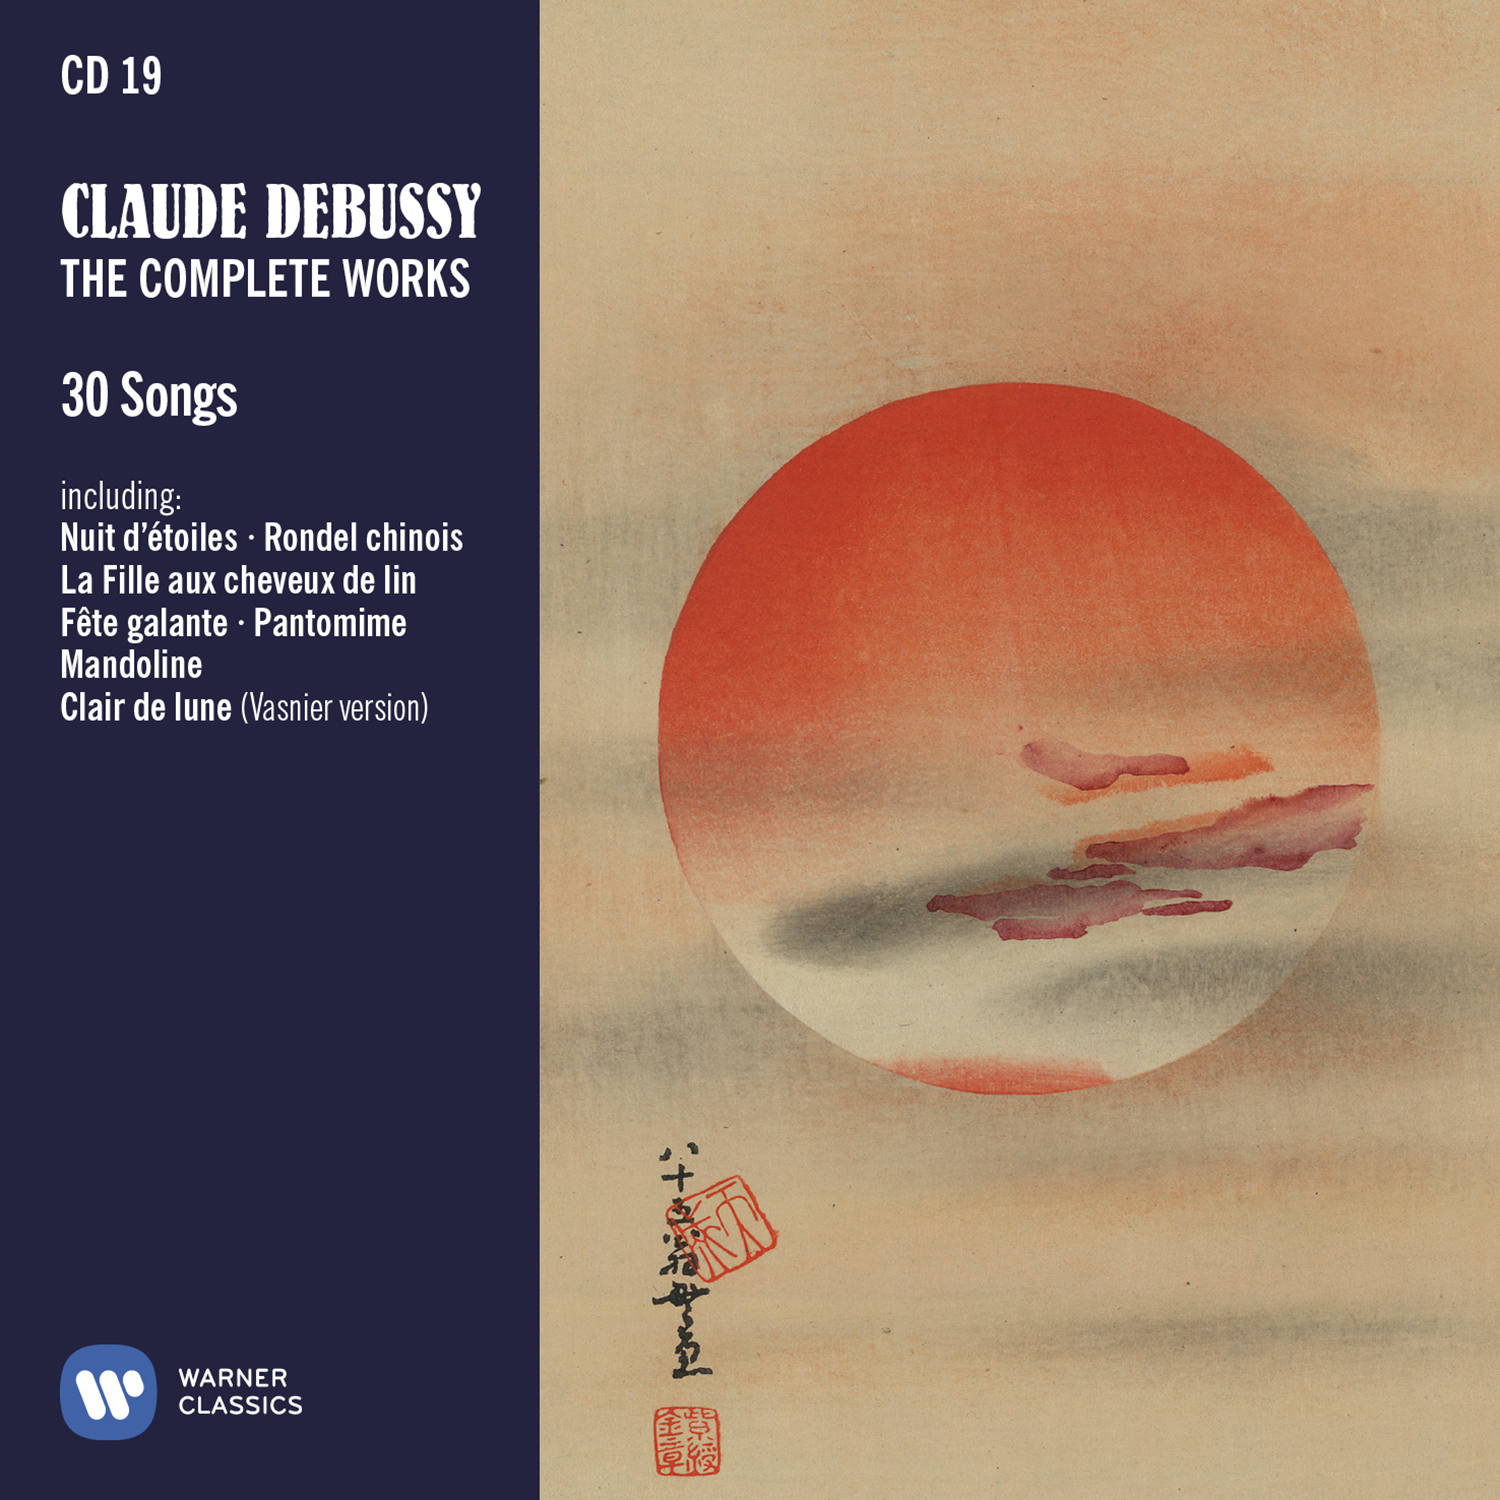 Debussy The complete works - Cover wallet CD19.jpg